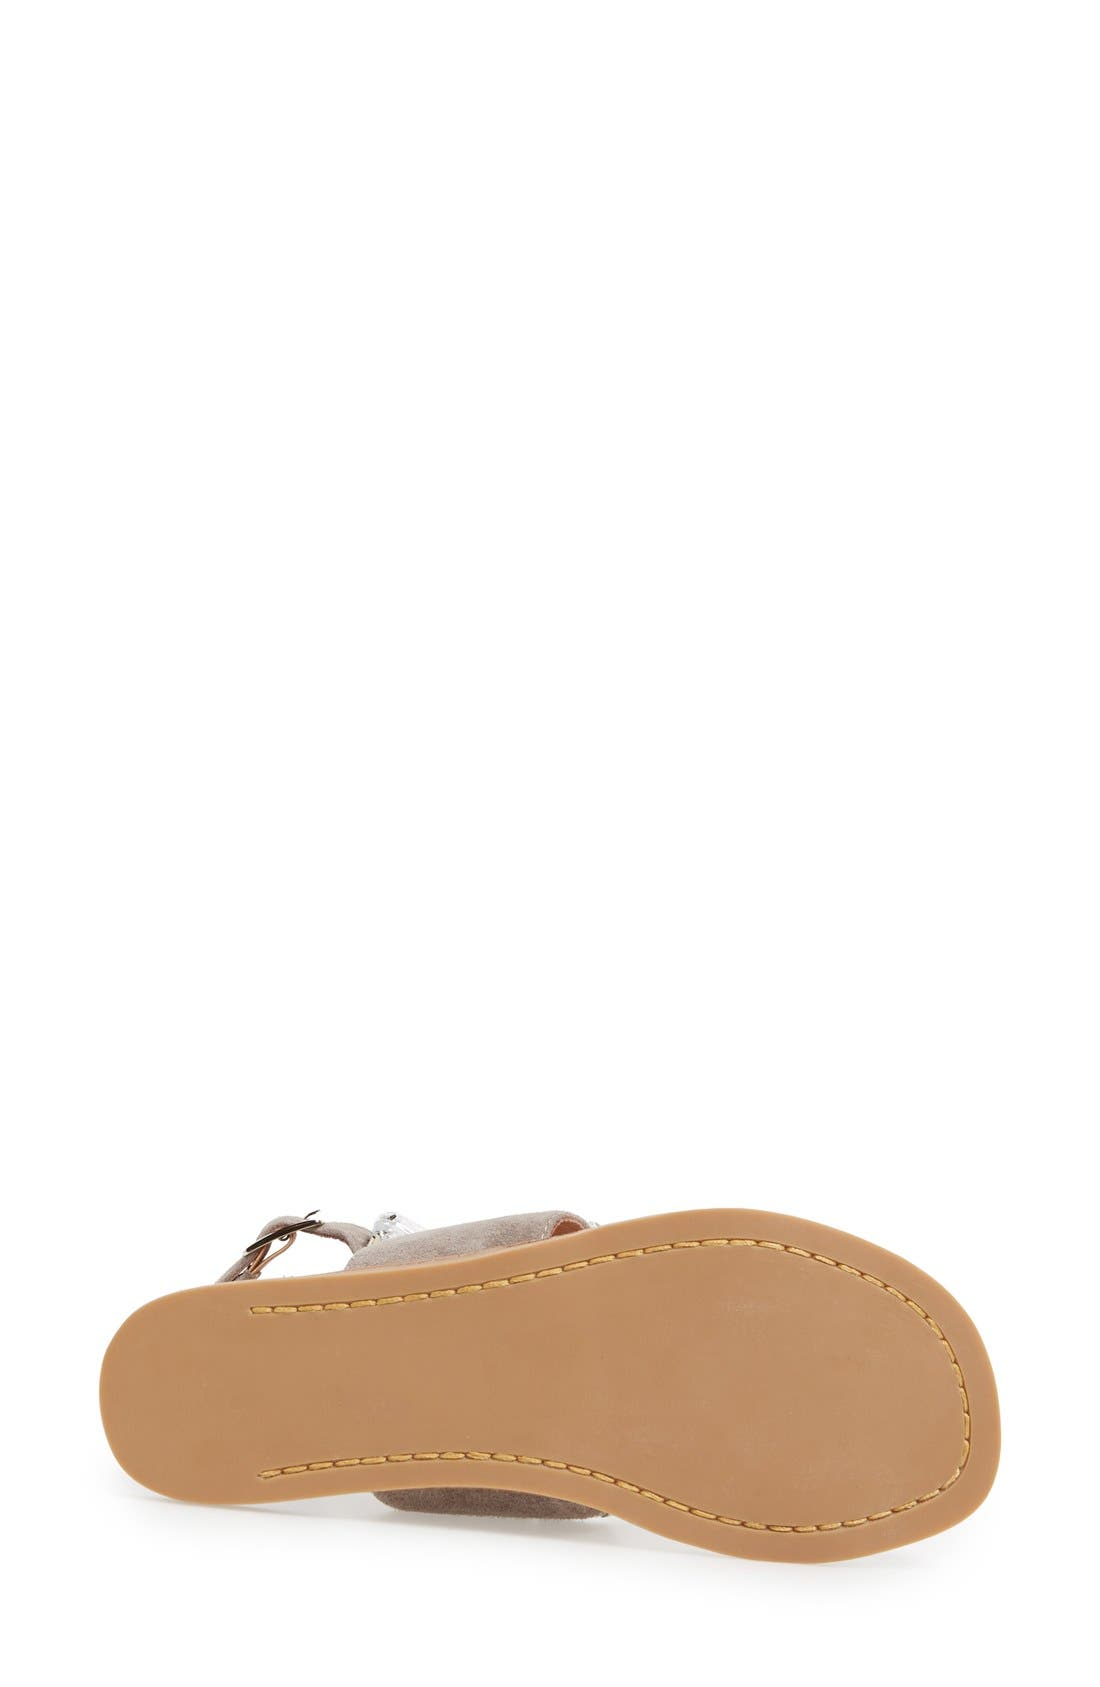 JEFFREY CAMPBELL, 'Sabita' Jeweled Suede Ankle Strap Sandal, Alternate thumbnail 5, color, 060